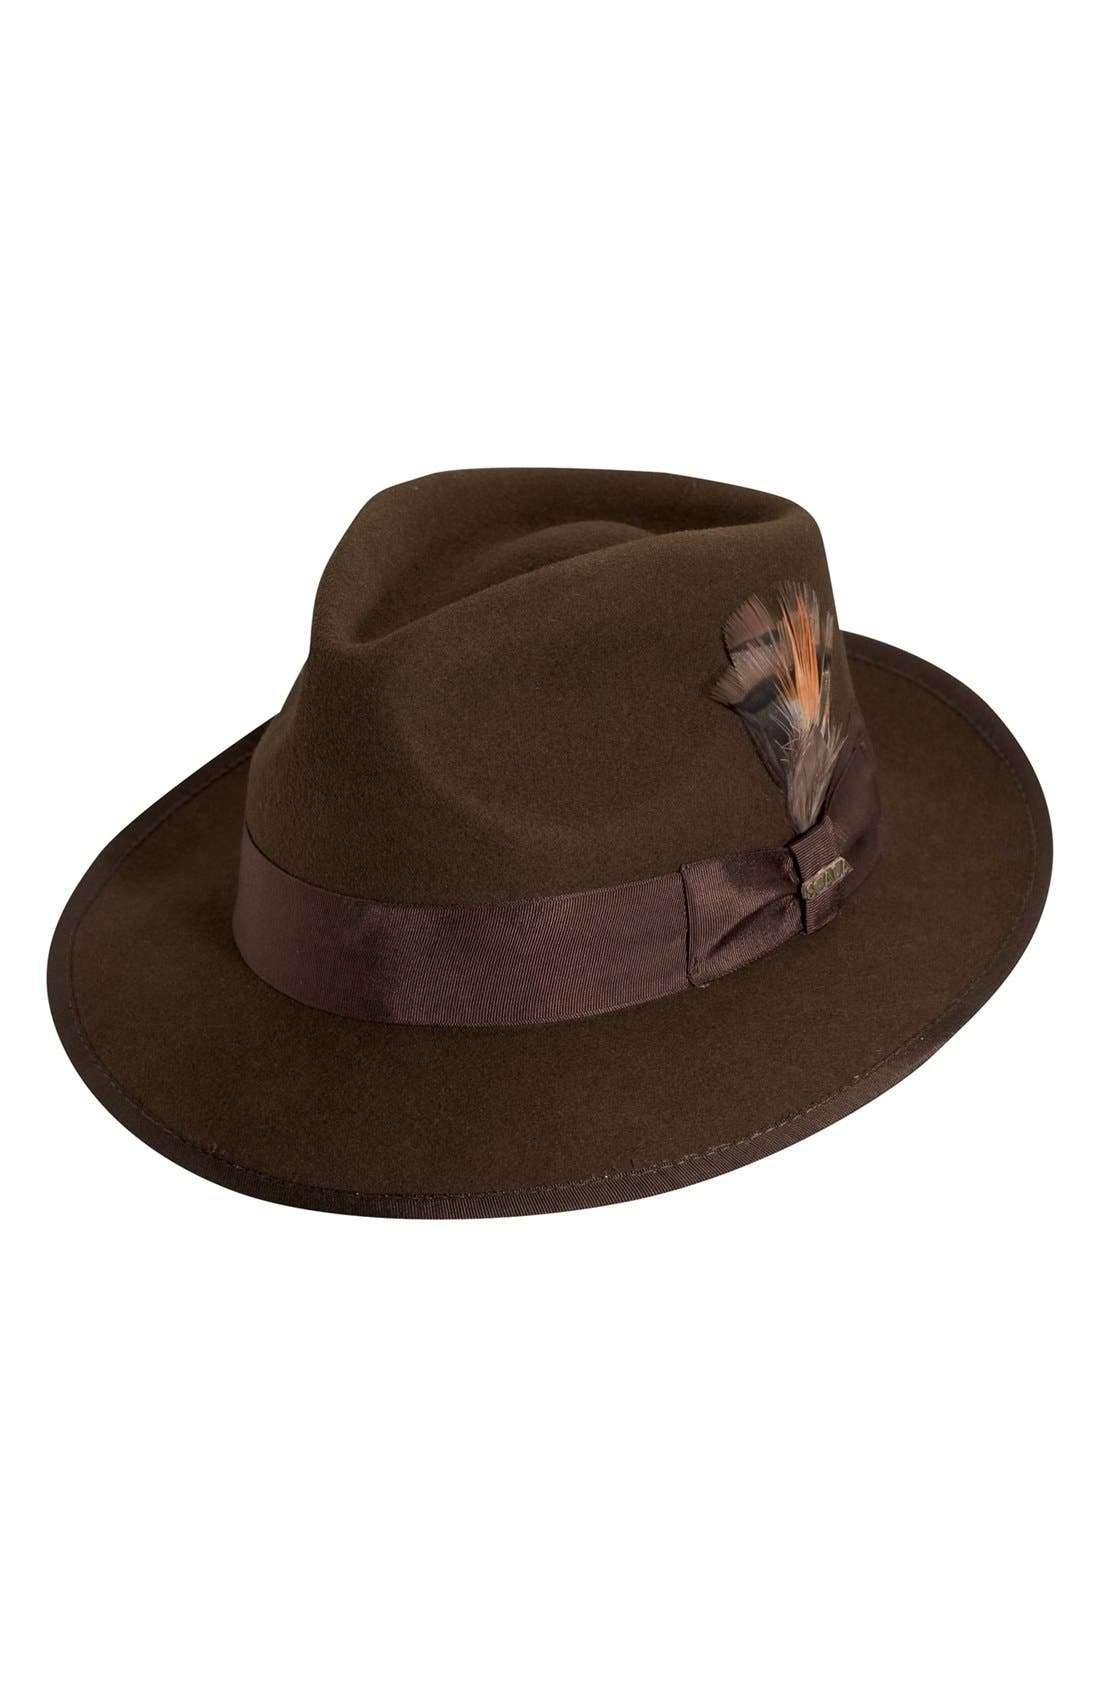 'Classico' Wool Felt Snap Brim Hat,                         Main,                         color, Brown